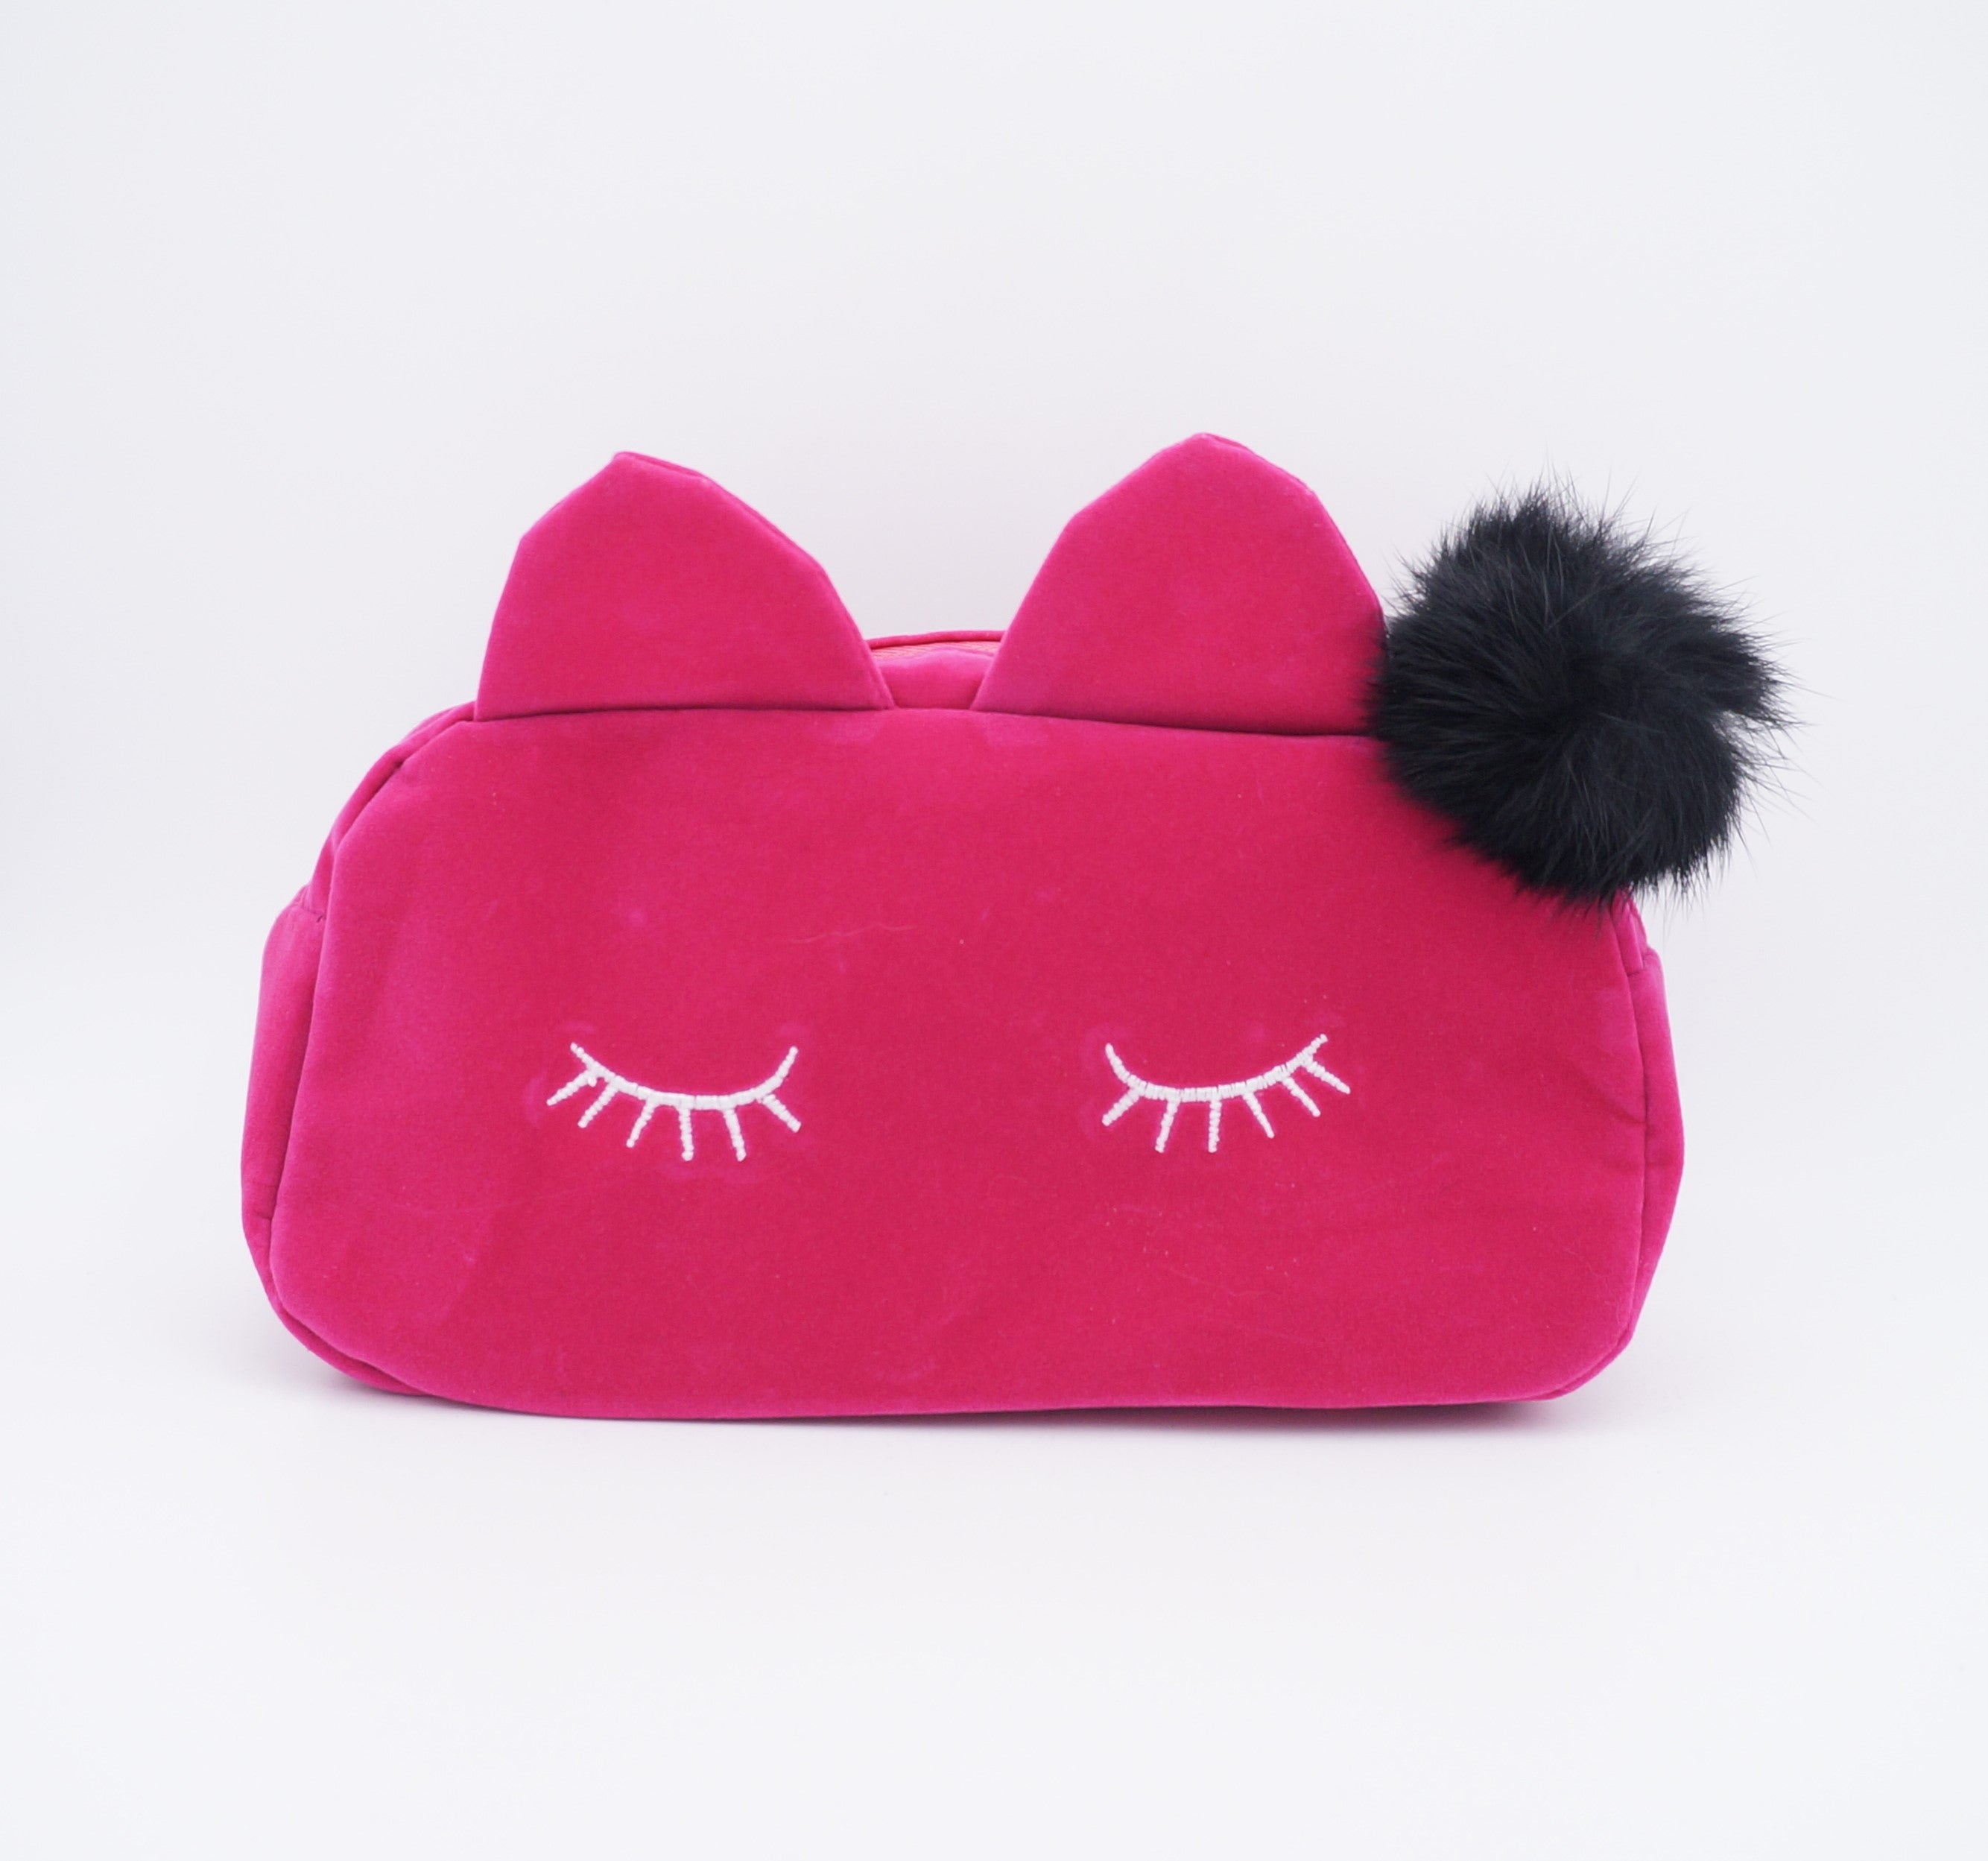 Trousse à Maquillage Chat Rose Velours - Ambelle